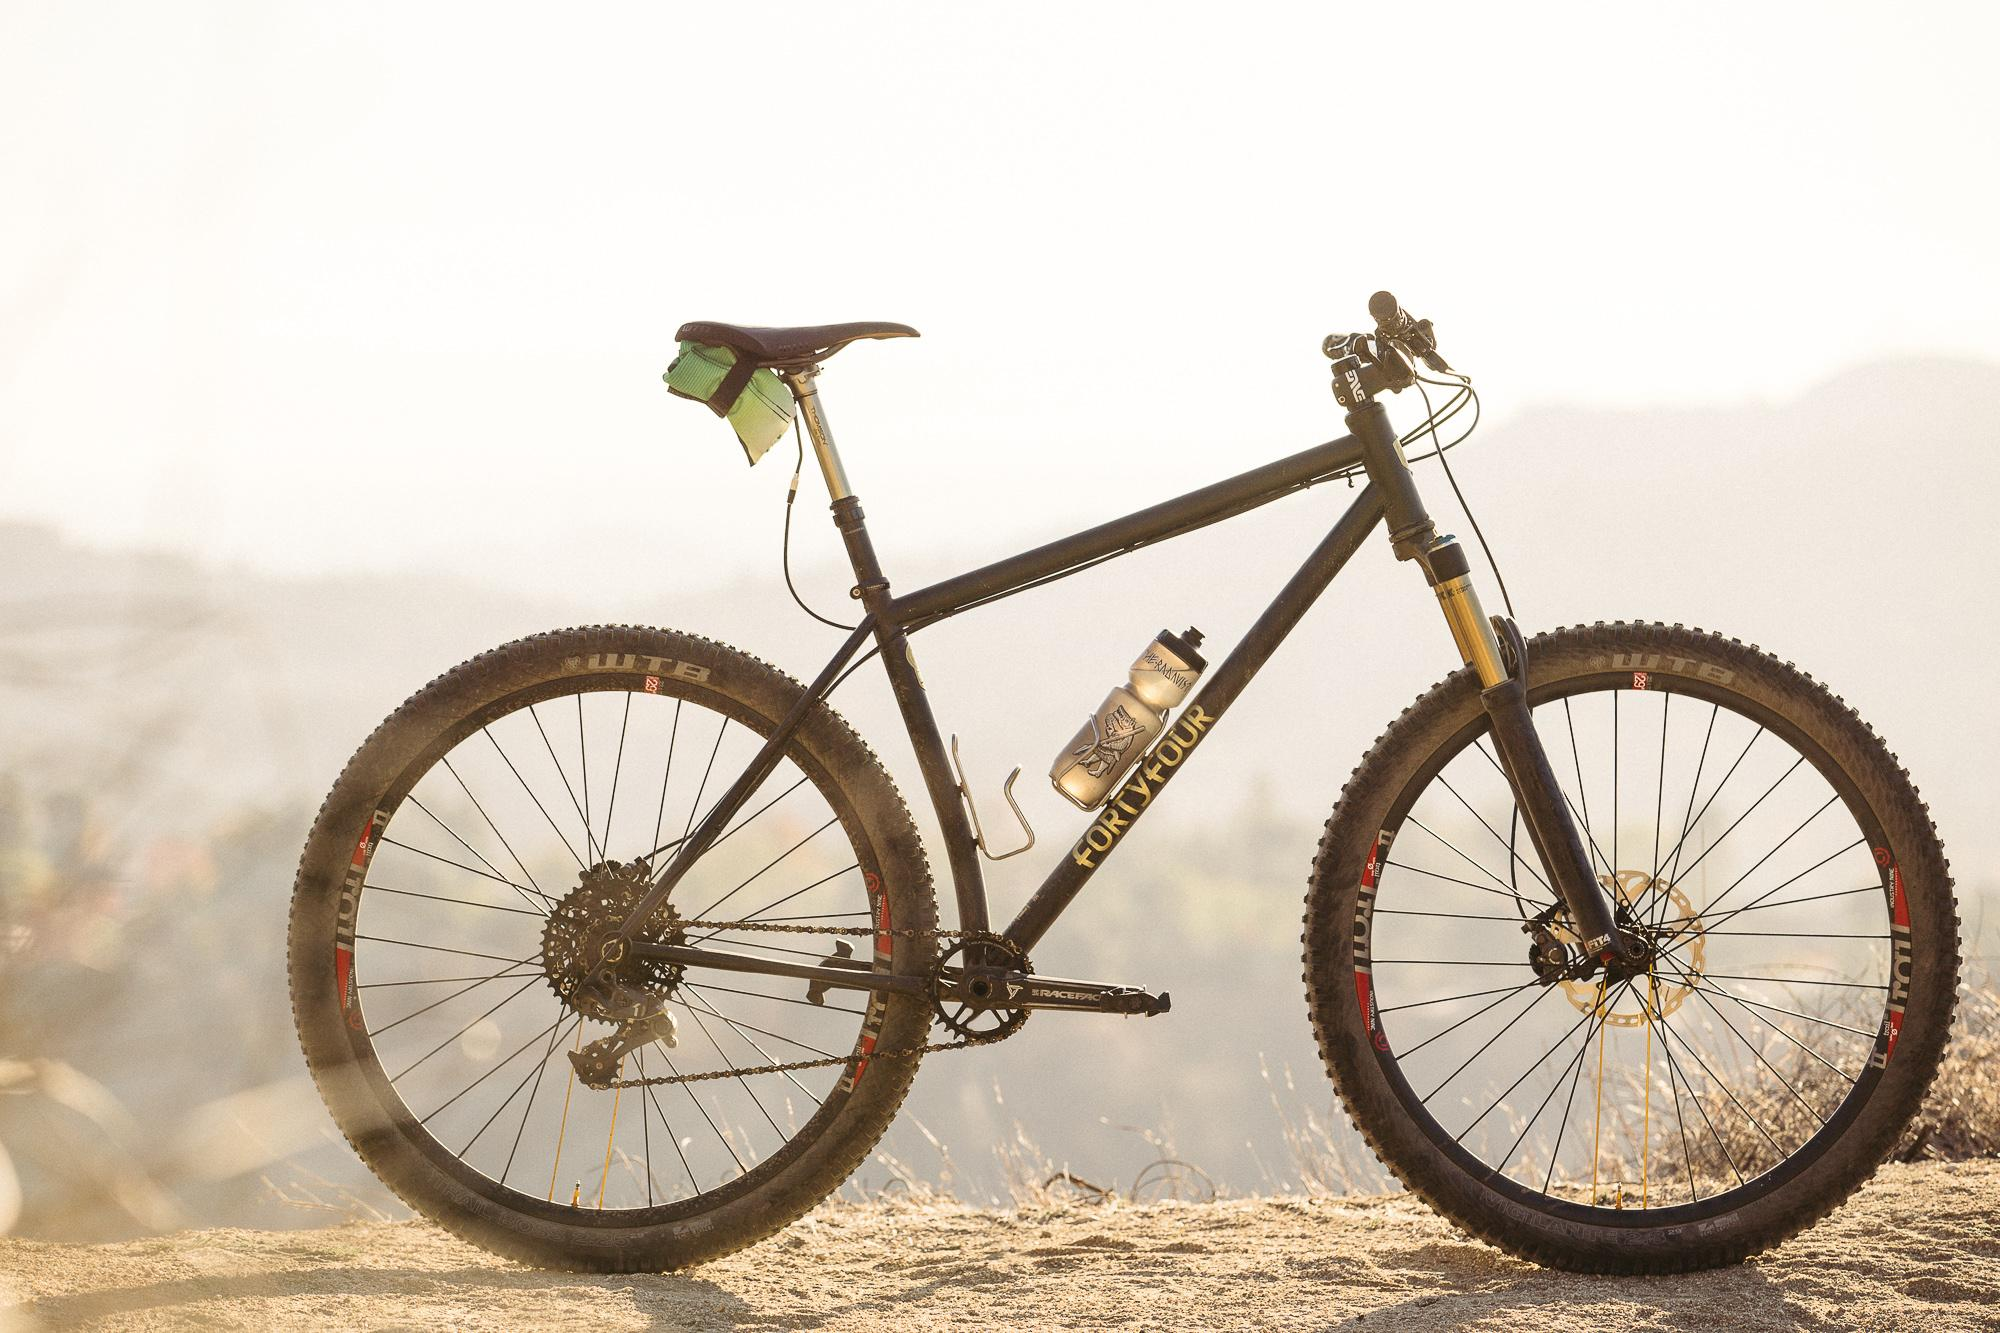 Swear to Shred the 44 Bikes Marauder Hardtail 29'r